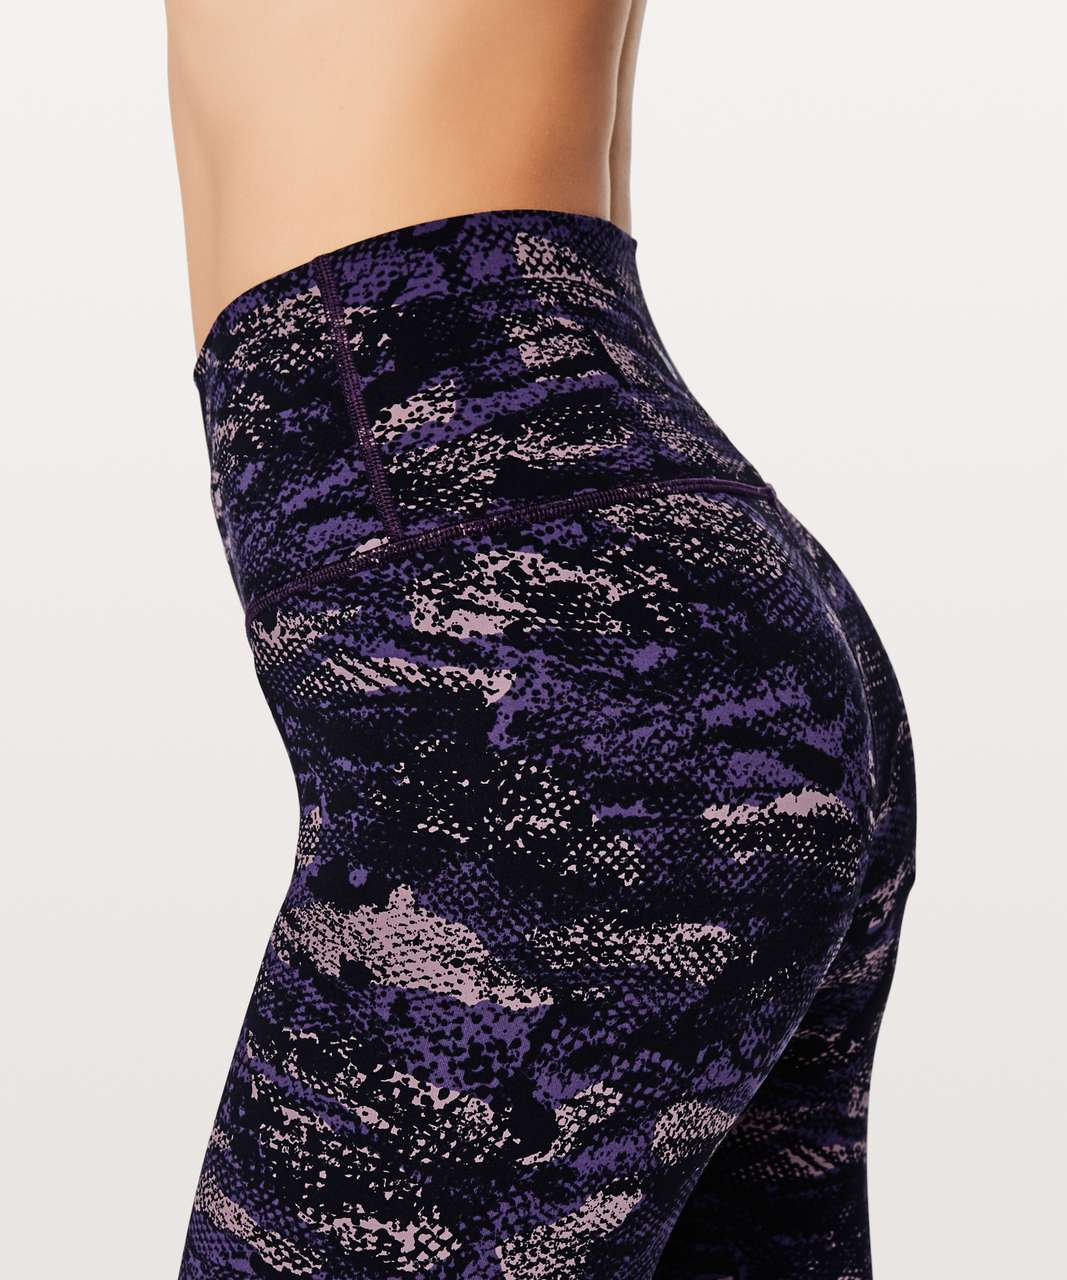 "Lululemon Wunder Under Hi-Rise 7/8 Tight Full-On Luxtreme 25"" - Rip Wave Purple Thunder Black"